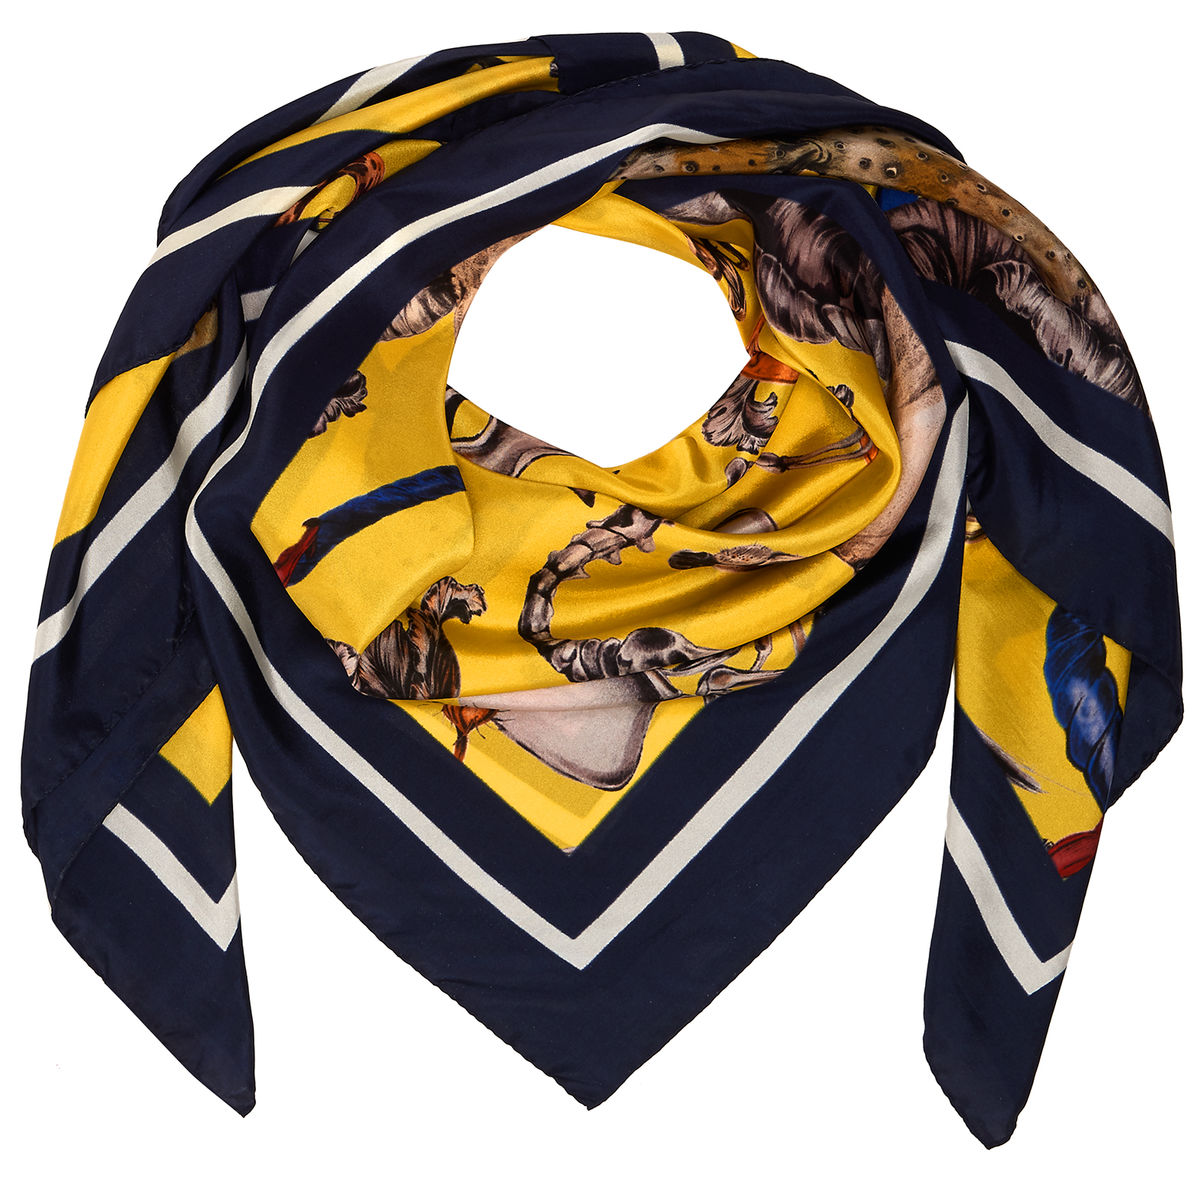 FREAKS SQUARE SCARF IN SULPHUR - product images  of